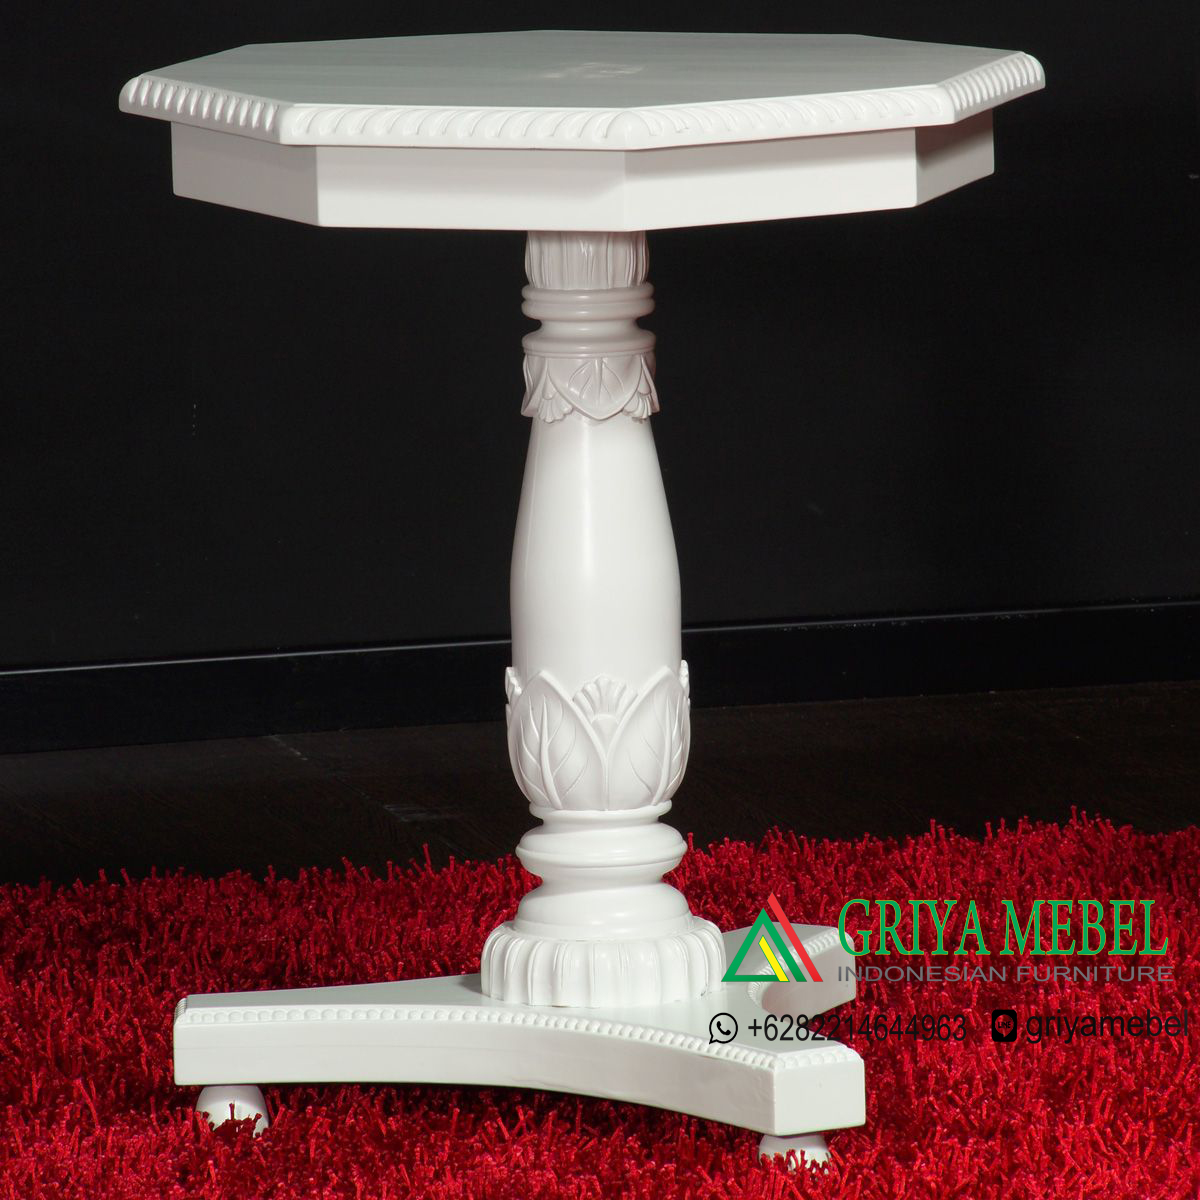 meja hias murah, ukuran meja hias, harga meja hias, meja hias terbaru, meja hias minimalis, jual meja hias, meja voyer, jual meja voyer, meja teras, furniture dekorasi, furniture decor, furniture duco putih, furniture murah, indonesian furnitures